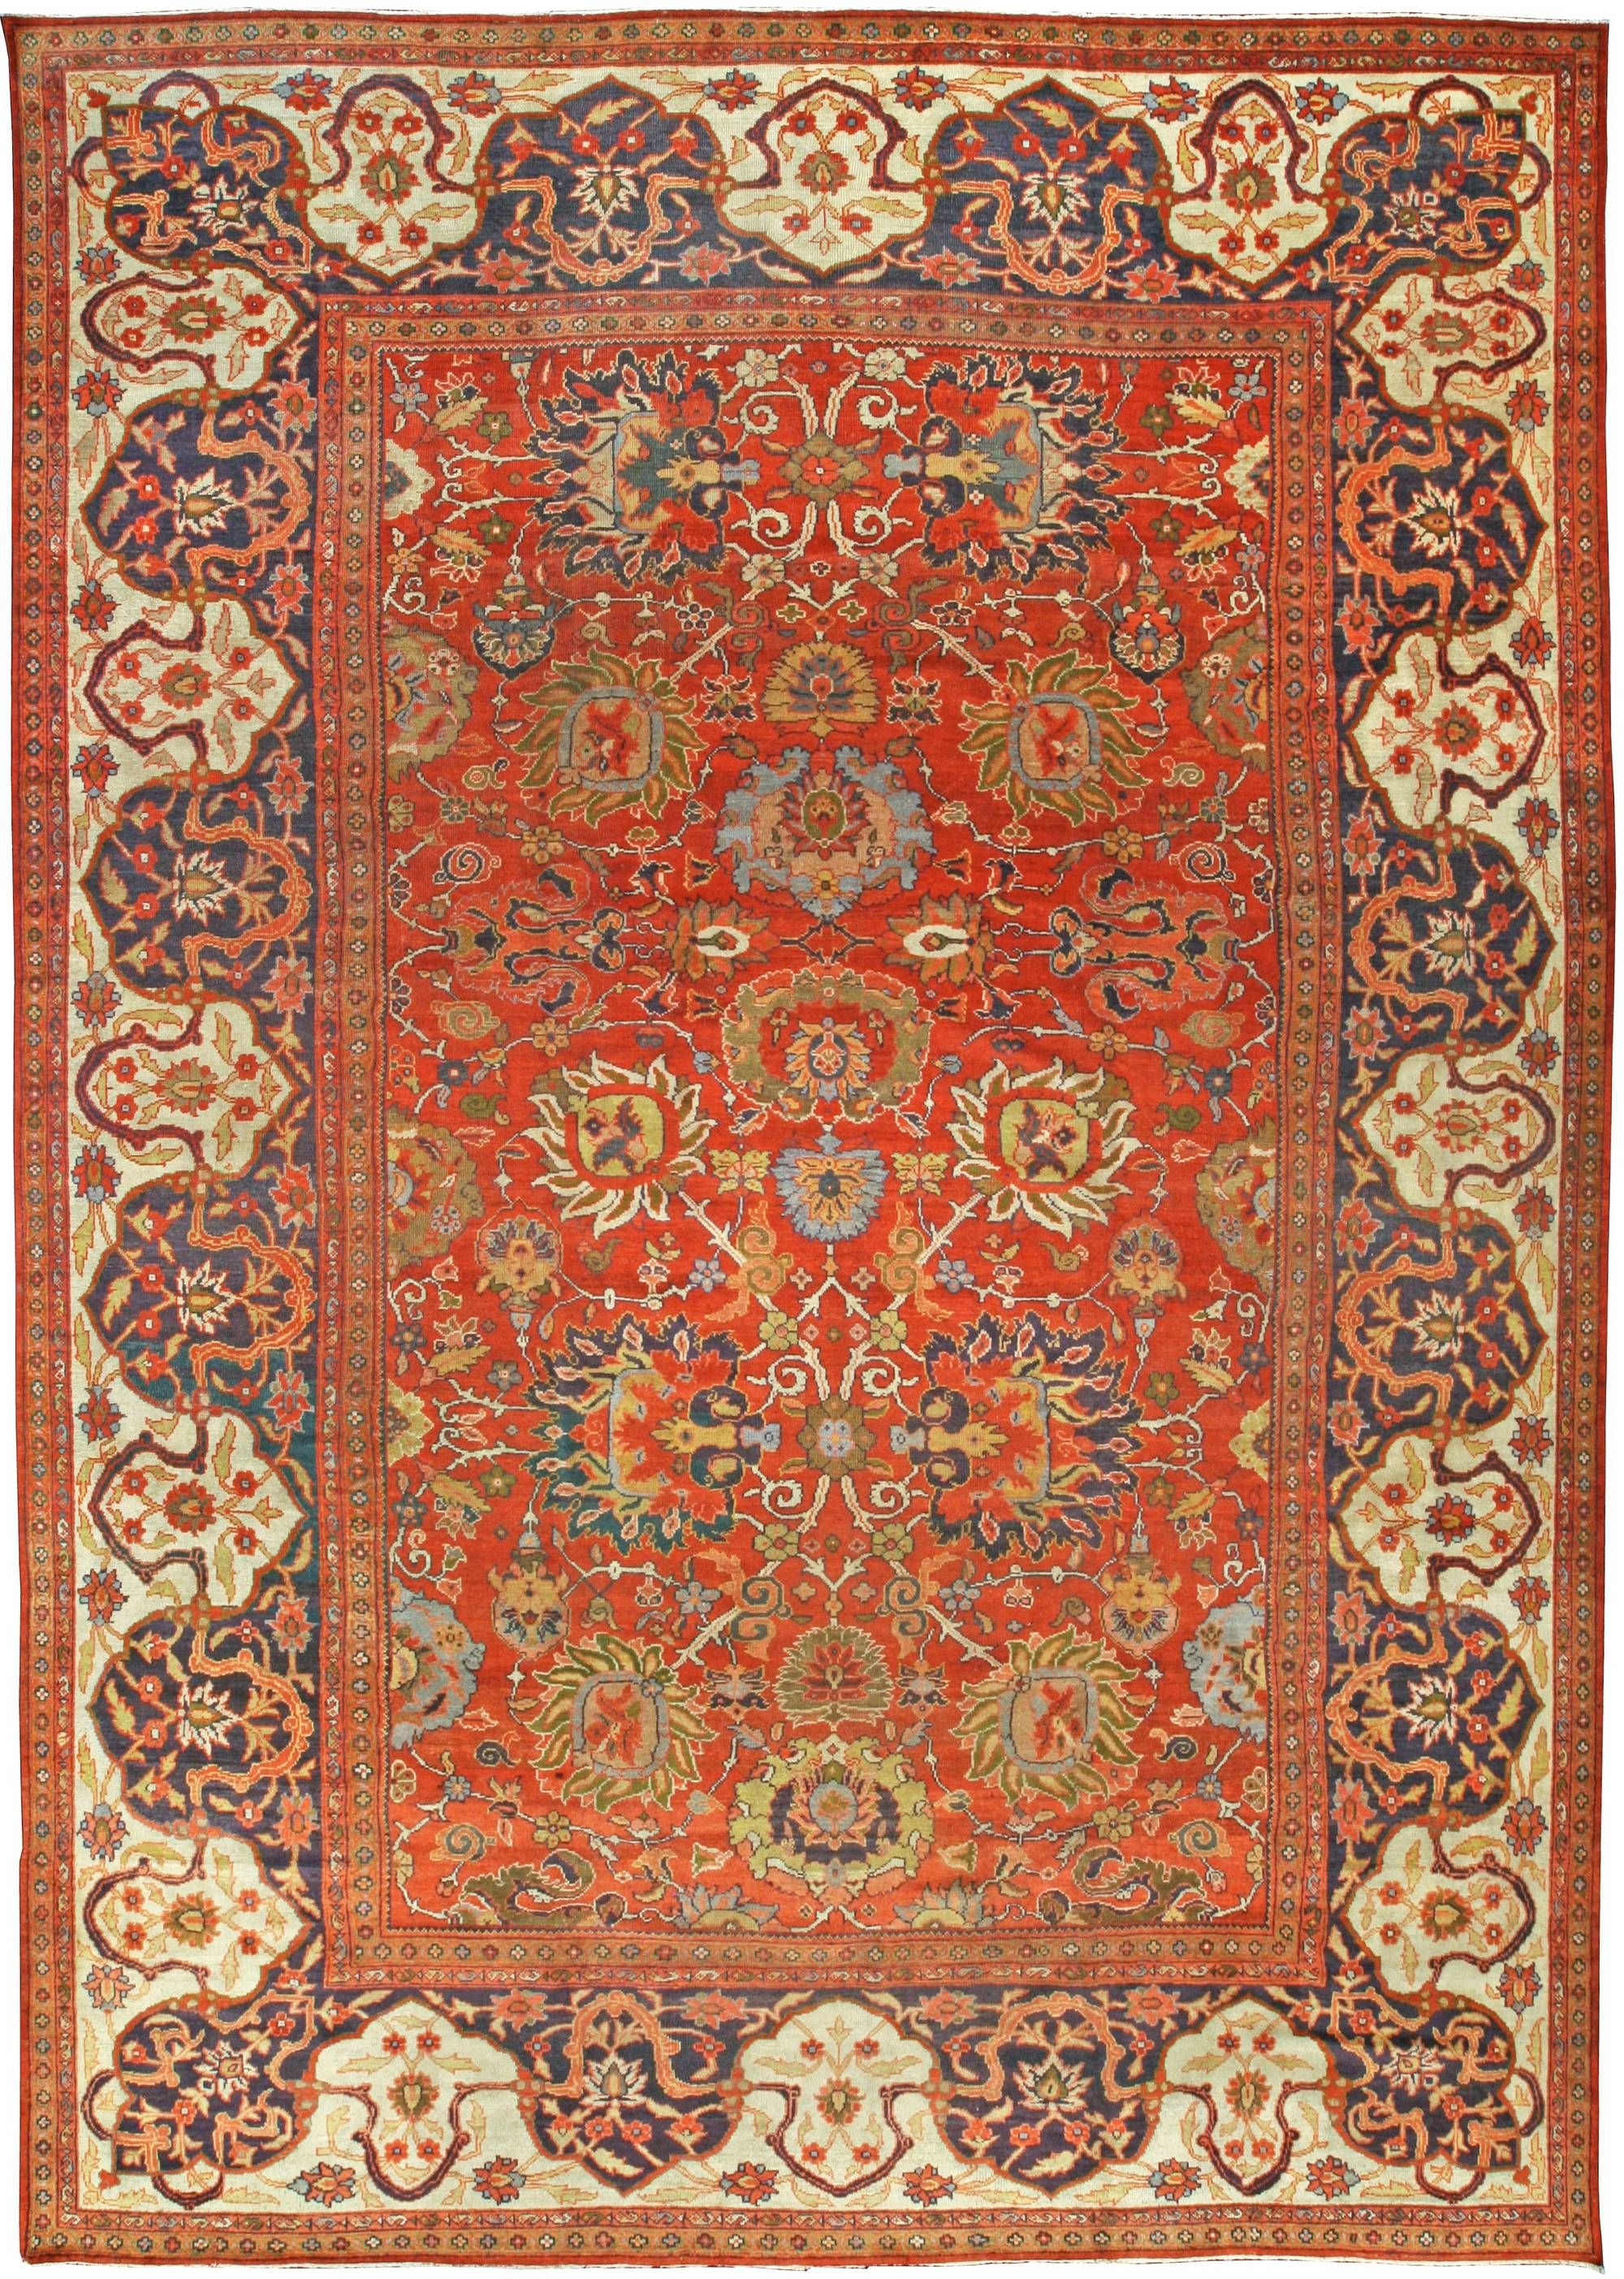 19th Century Persian Sultanabad Red Botanical Handmade Carpet Bb6711 By Dlb Antique Rugs Persian Carpet Sultanabad Rug Antique Rugs